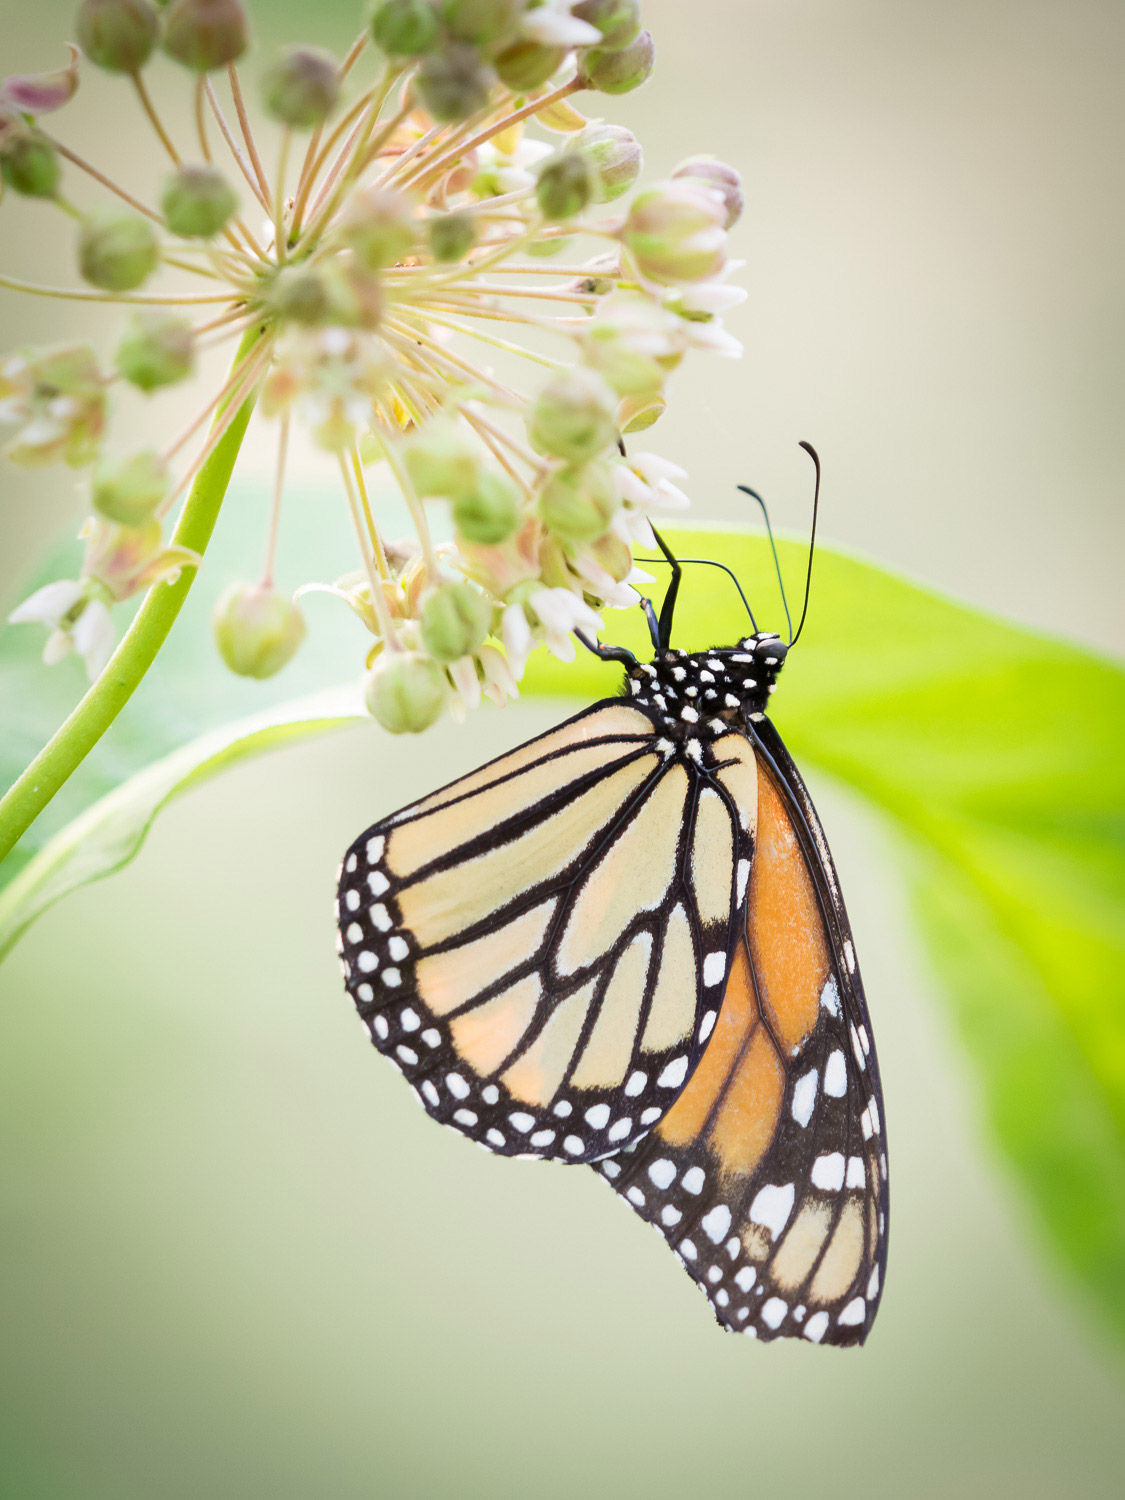 An orange spotted butterfly on a flower with smaller white blossoms